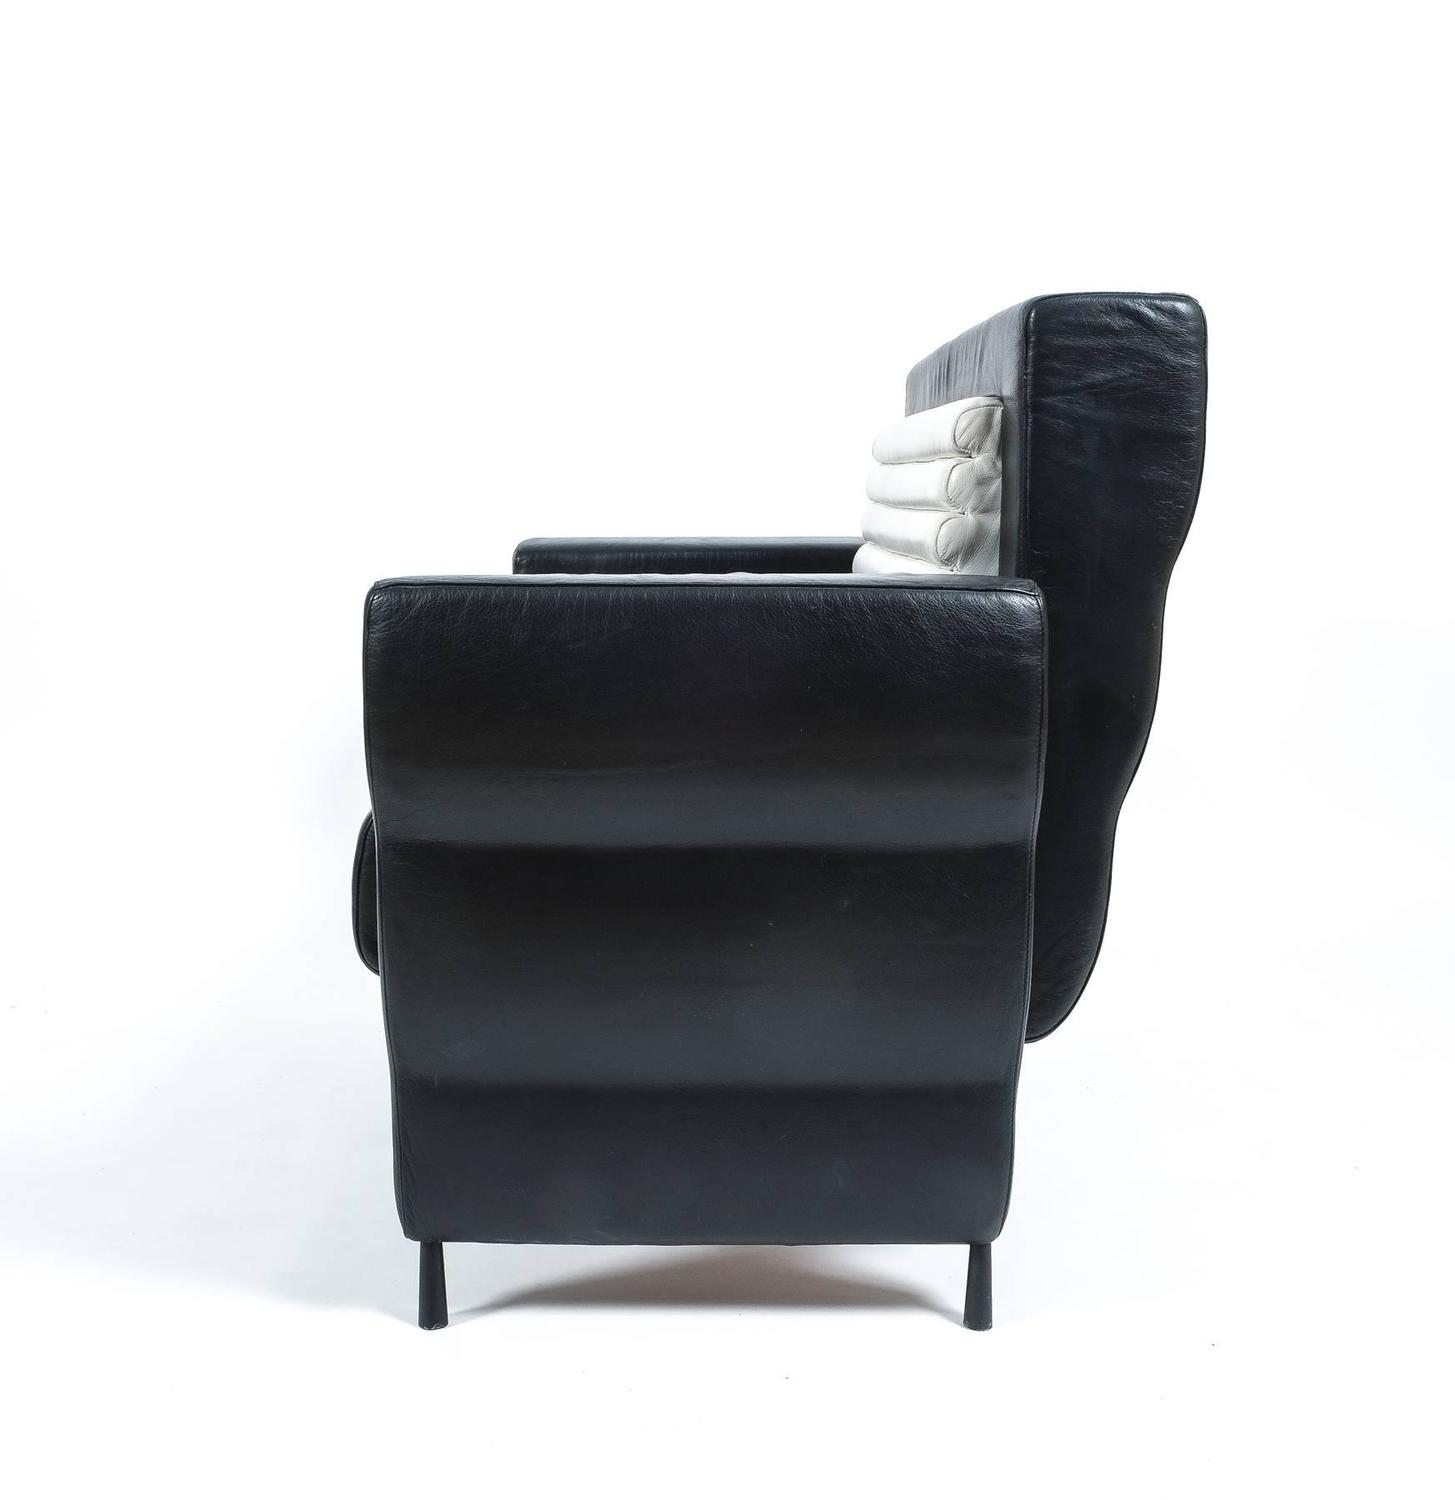 black and white leather sofas for sale sectional sofa by ugo la pietra 1985